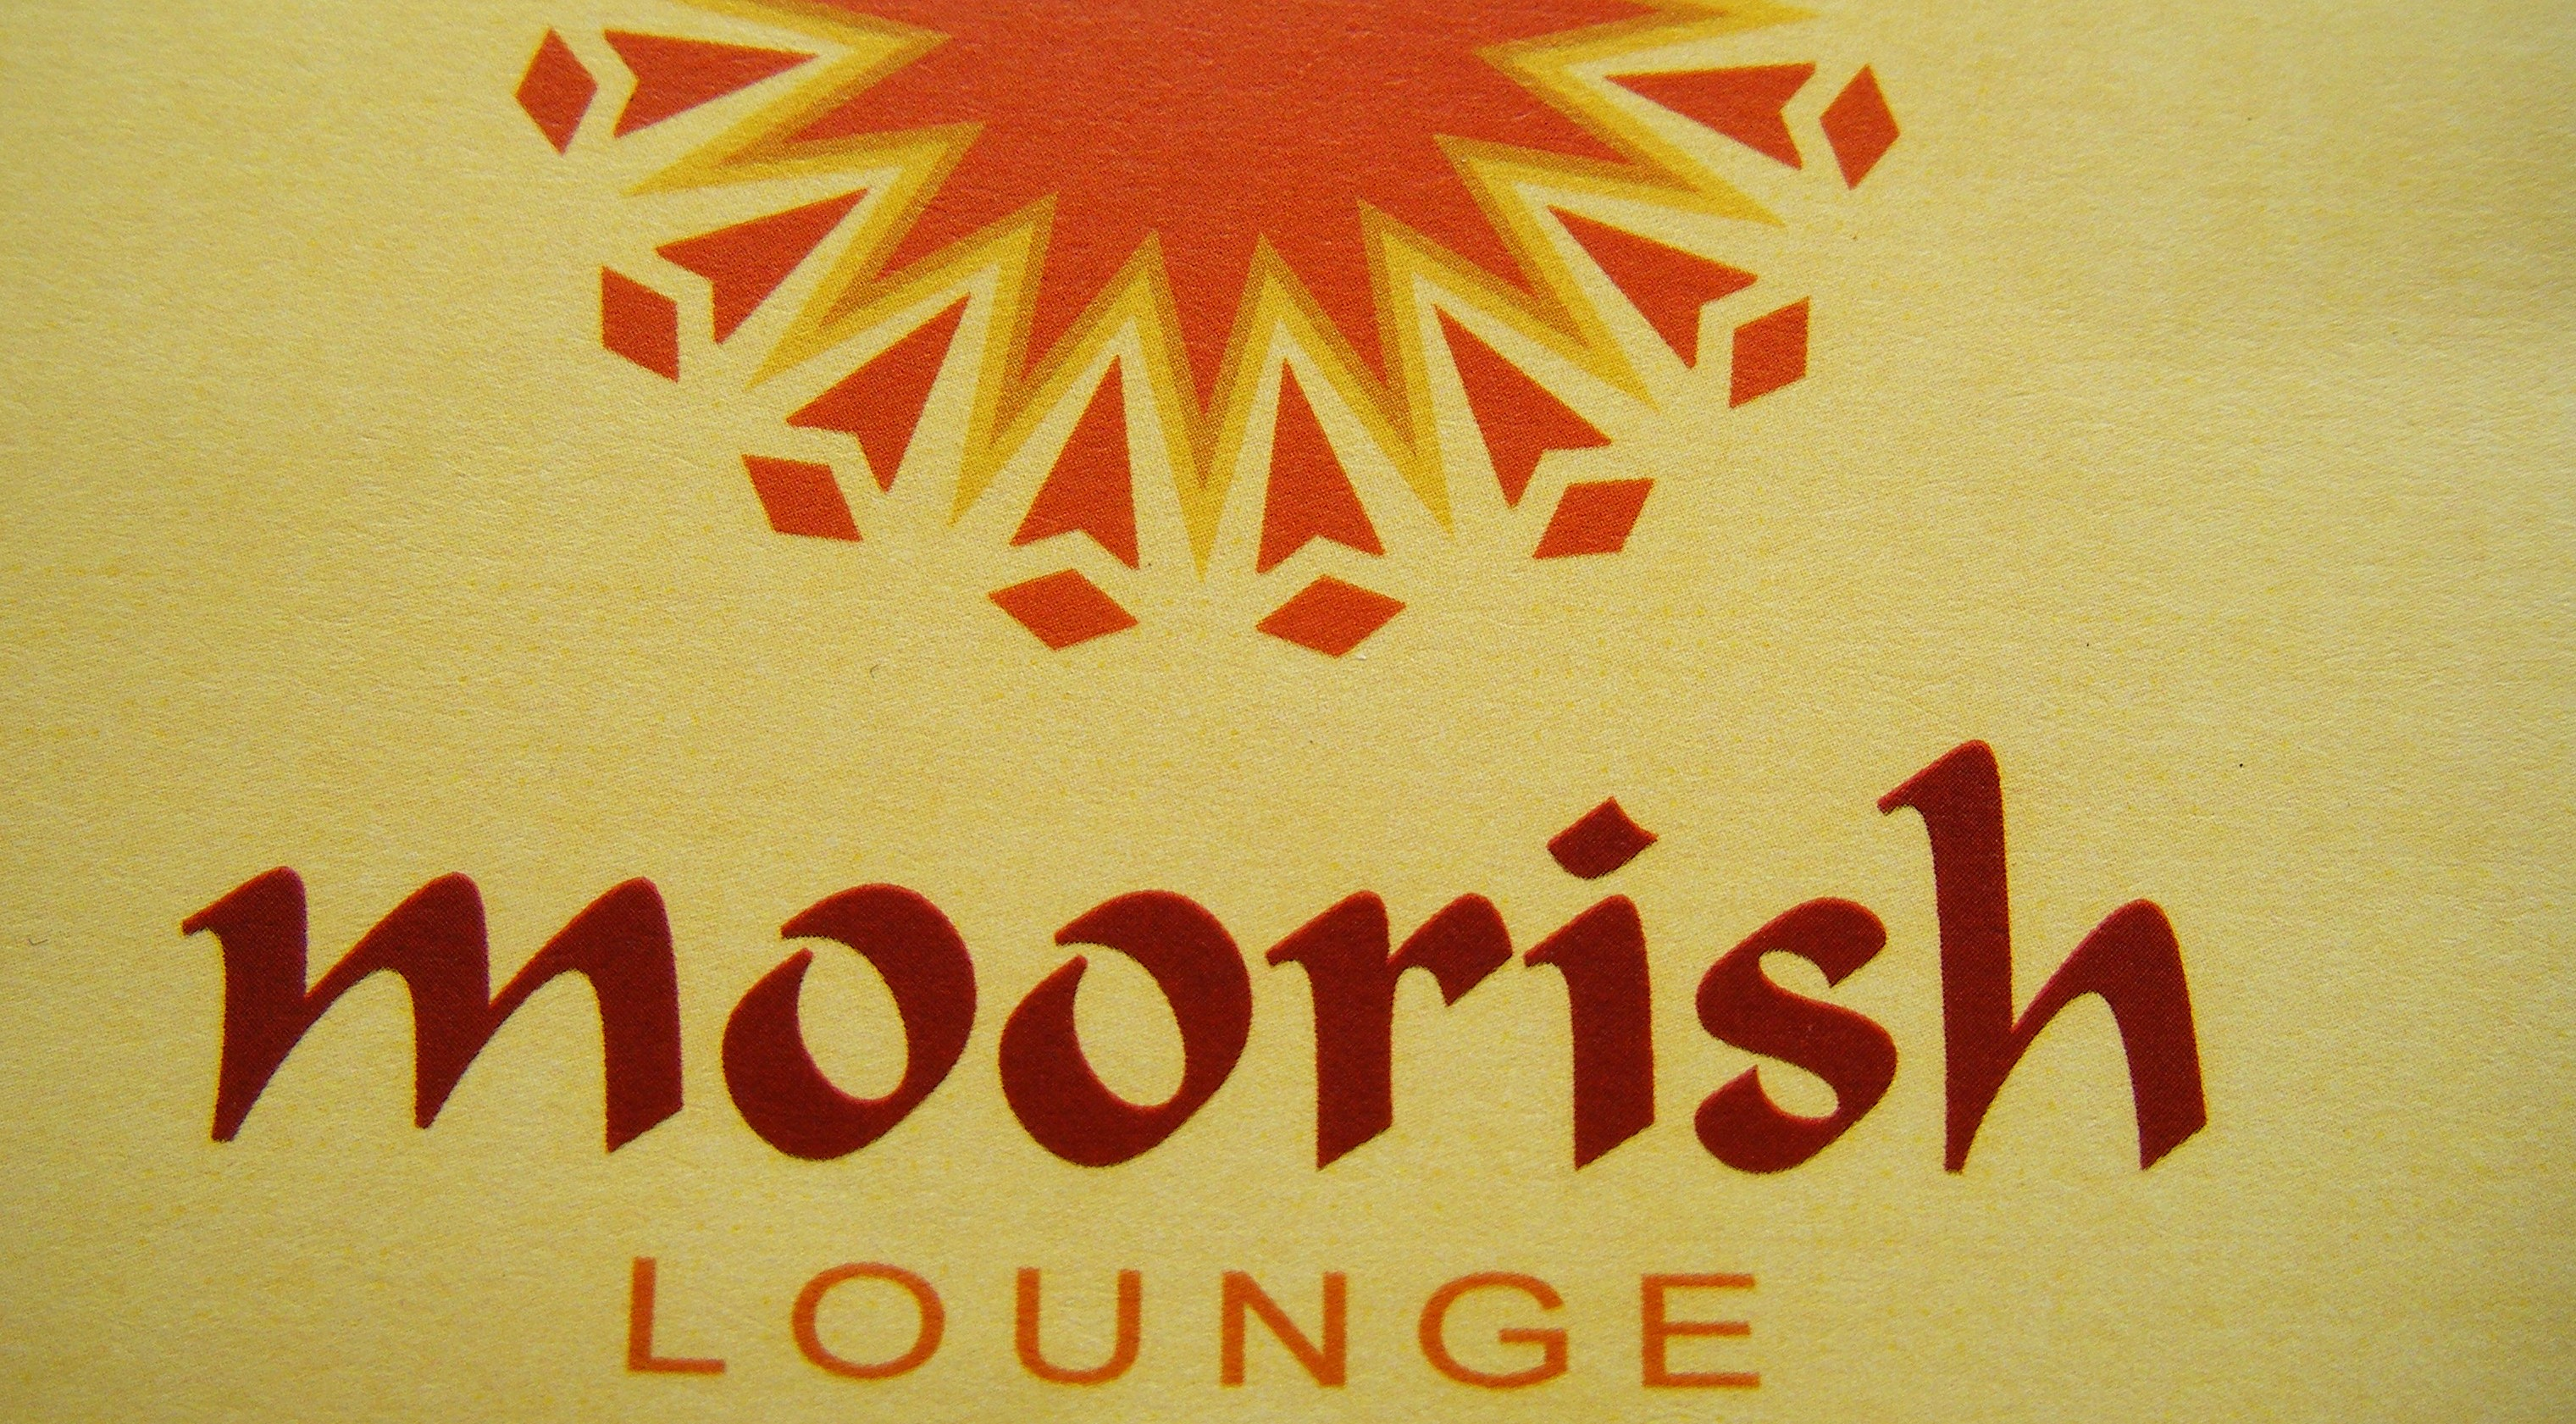 Moorish Lounge